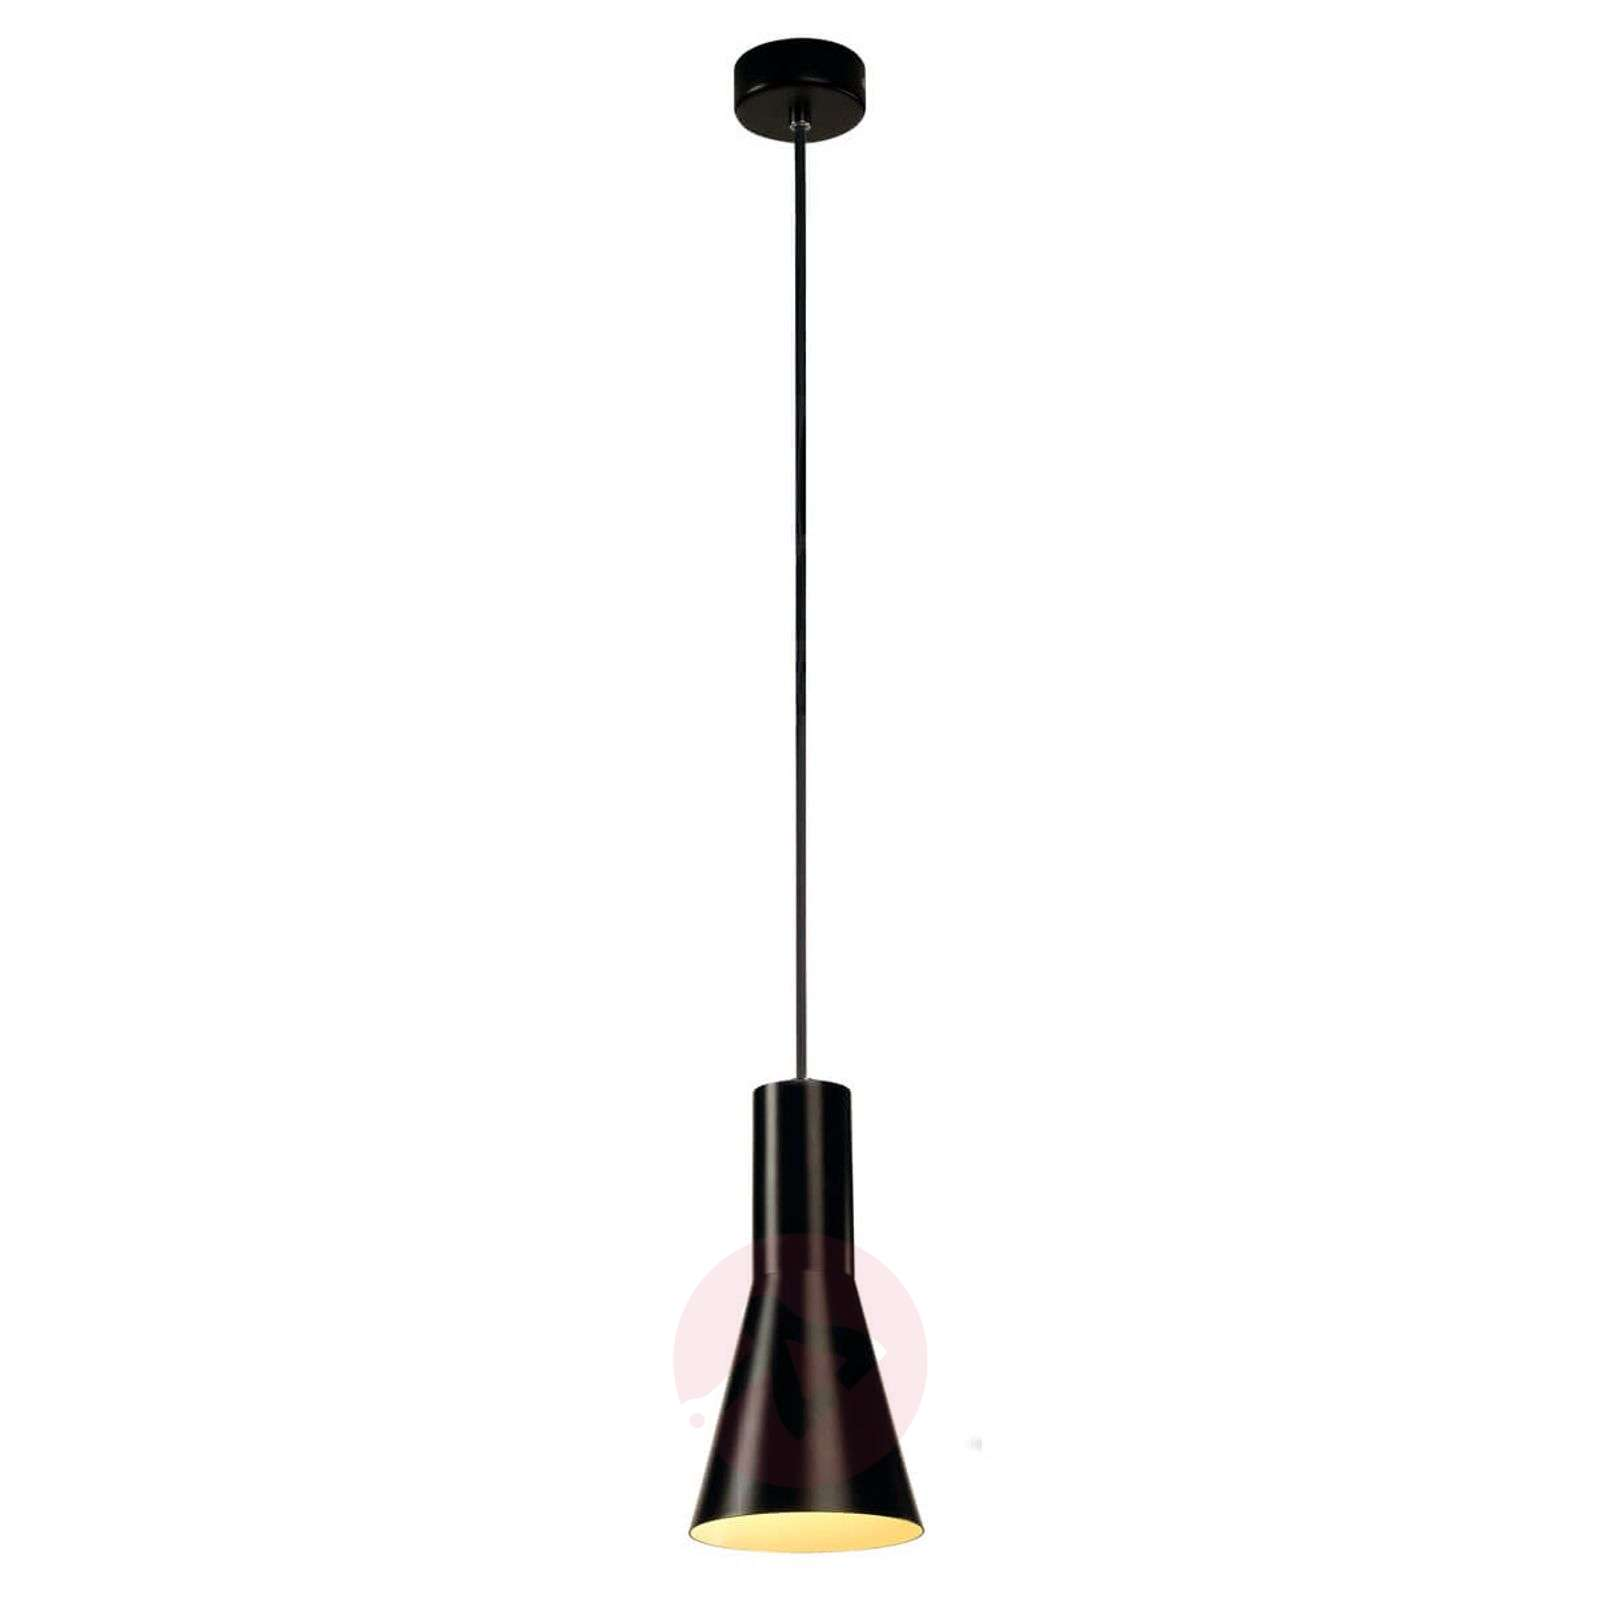 Small pendant light Phelia-5504738-01